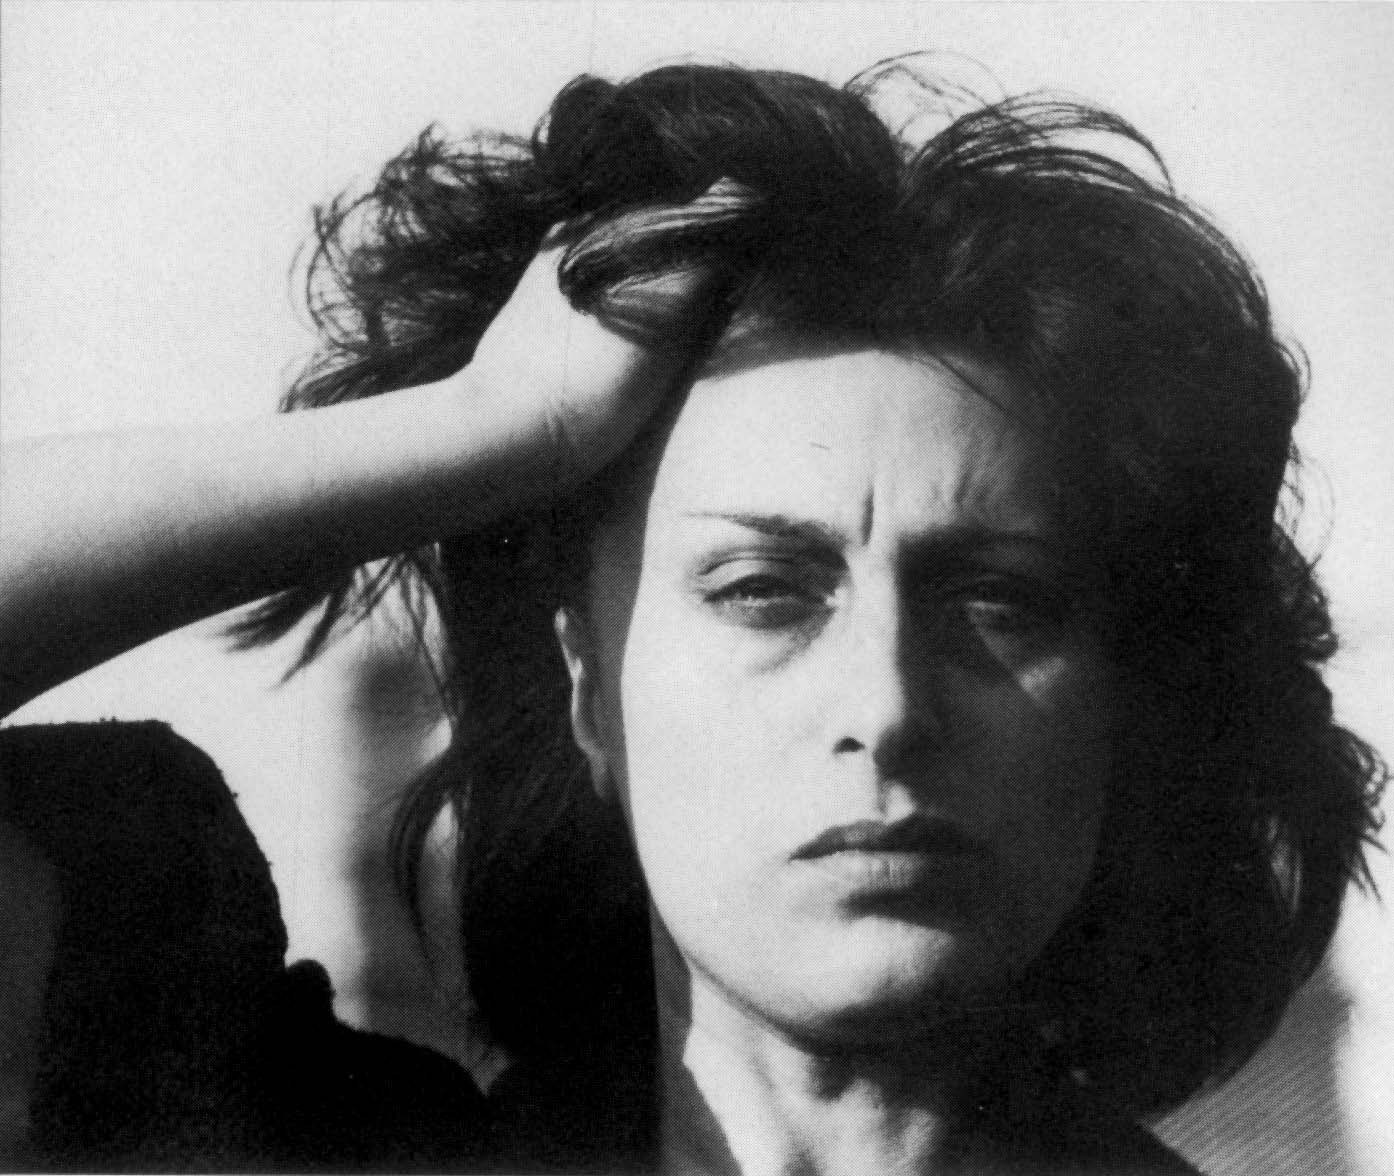 Amato Anna Magnani Biography - Childhood, Life Achievements & Timeline RB75